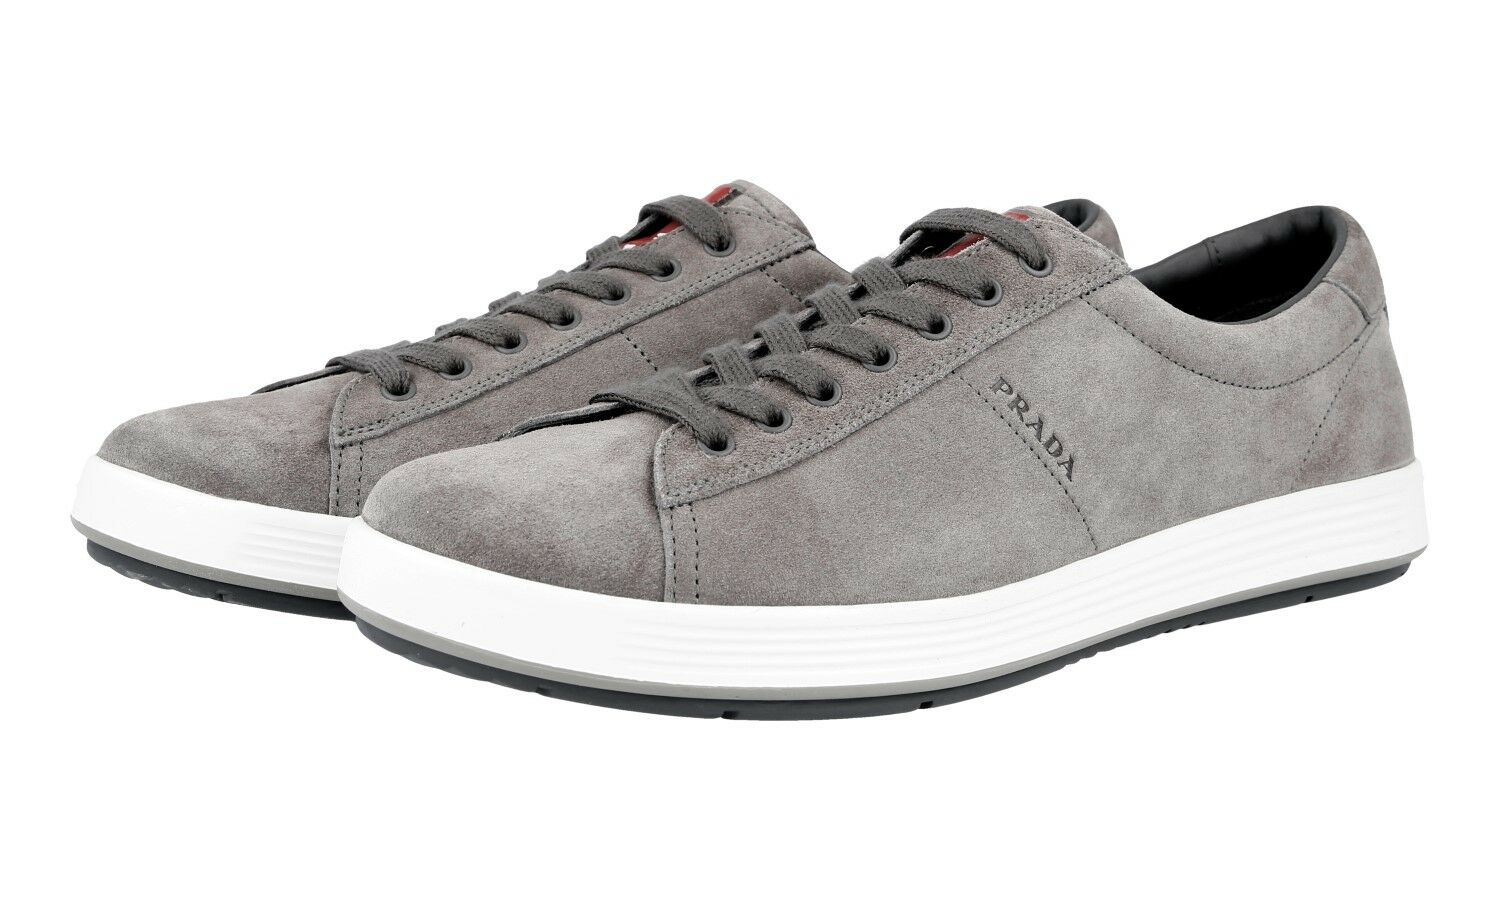 AUTHENTIC PRADA SNEAKERS SHOES 4E2860 GREY SUEDE NEW US 10